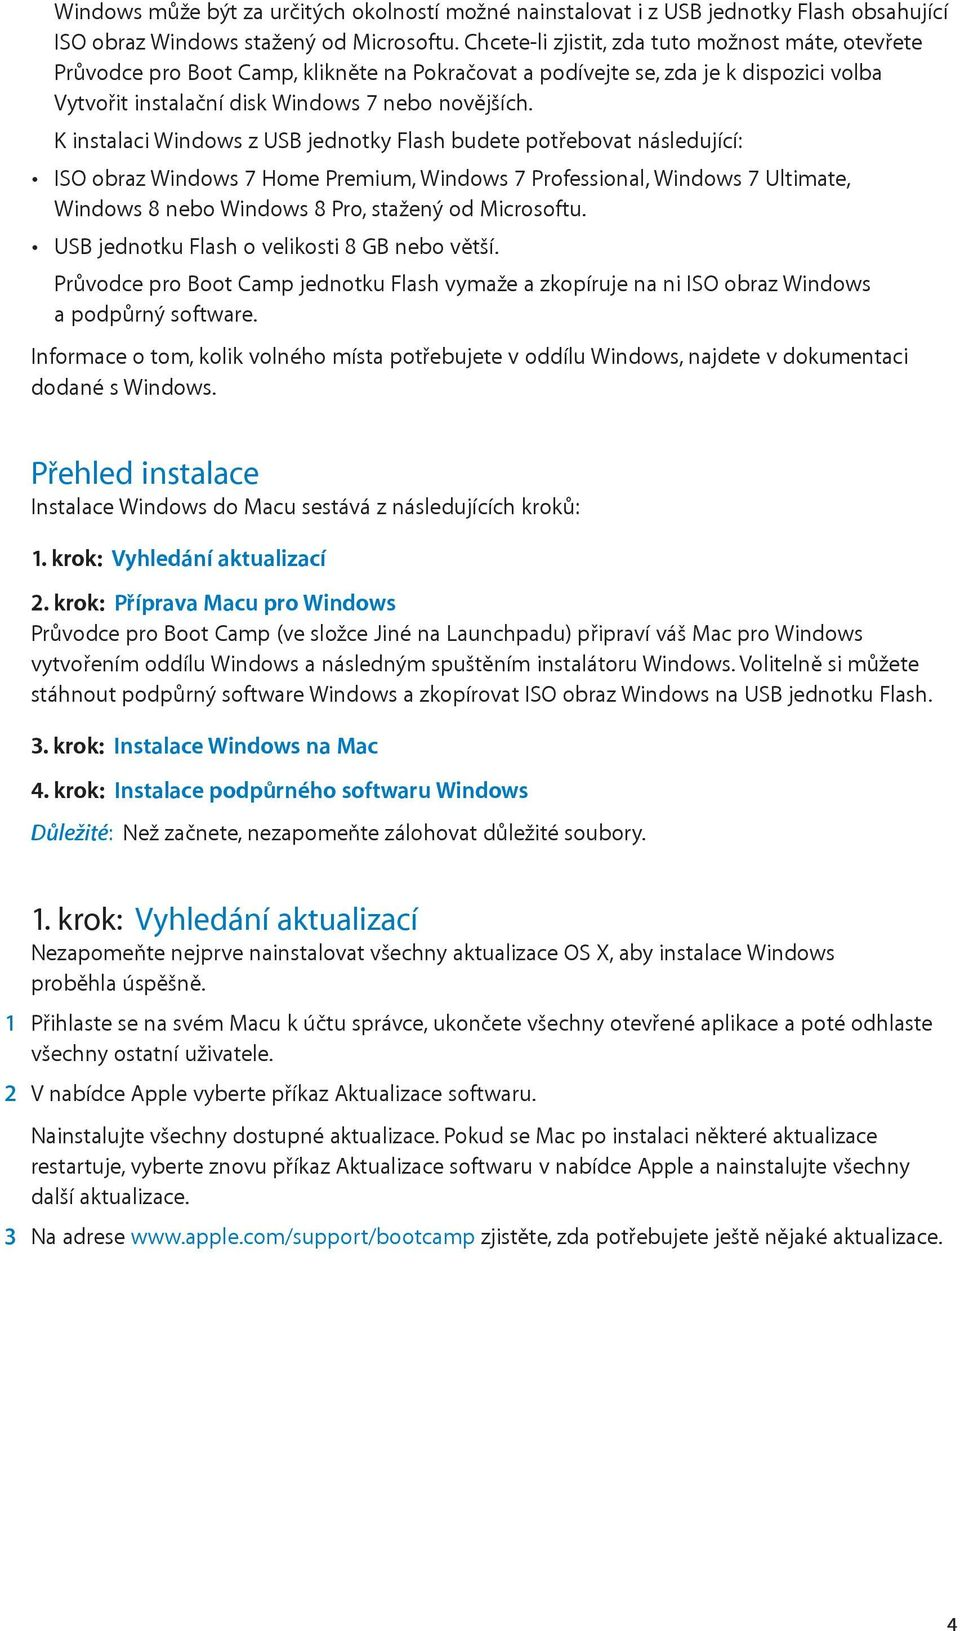 K instalaci Windows z USB jednotky Flash budete potřebovat následující: ISO obraz Windows 7 Home Premium, Windows 7 Professional, Windows 7 Ultimate, Windows 8 nebo Windows 8 Pro, stažený od